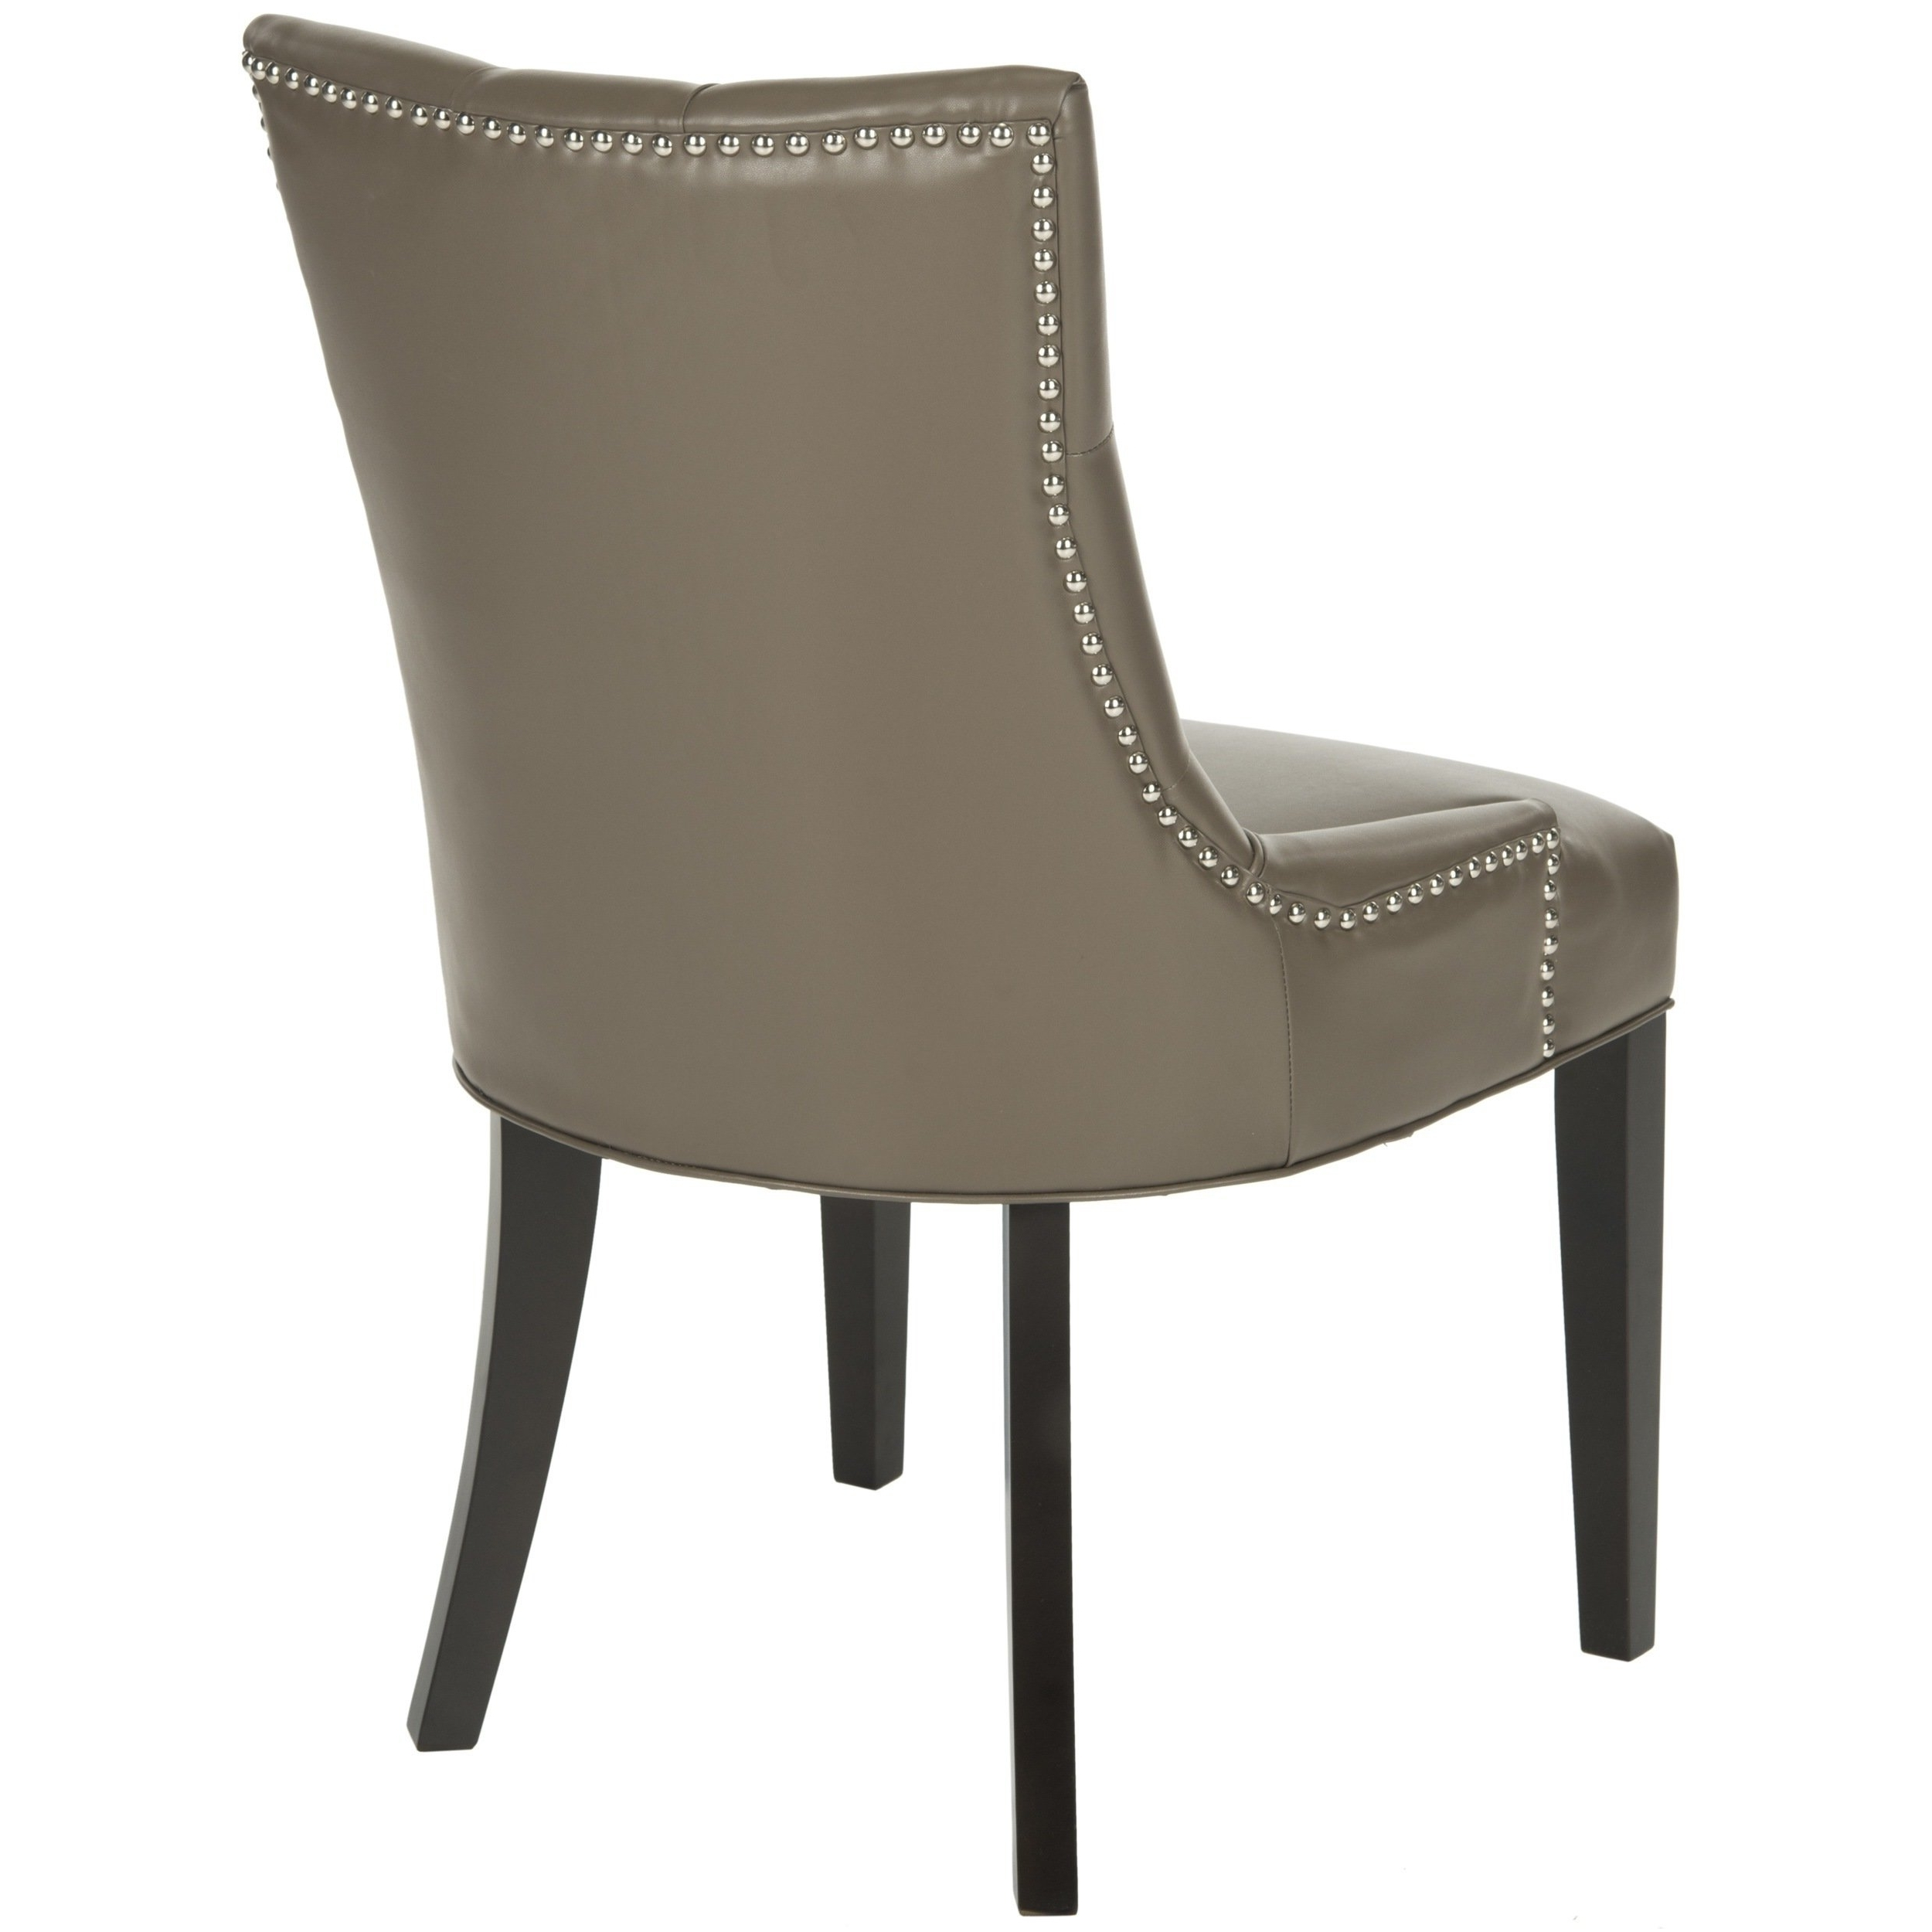 Popular Clay Side Chairs Within Shop Safavieh Abby Clay Leather Dining Chairs (Set Of 2) – Free (View 14 of 20)